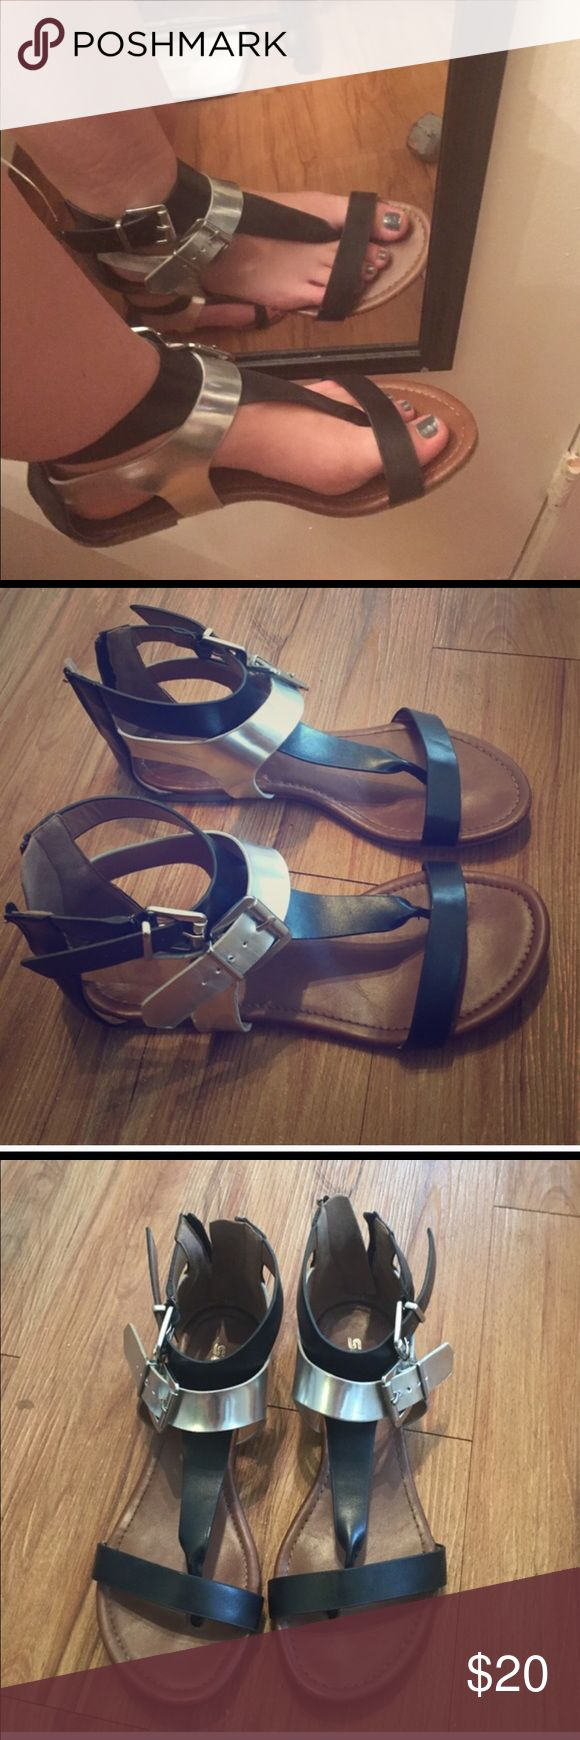 Gladiator sandals Black and silver zip up gladiator sandals excellent condition Shoes Sandals